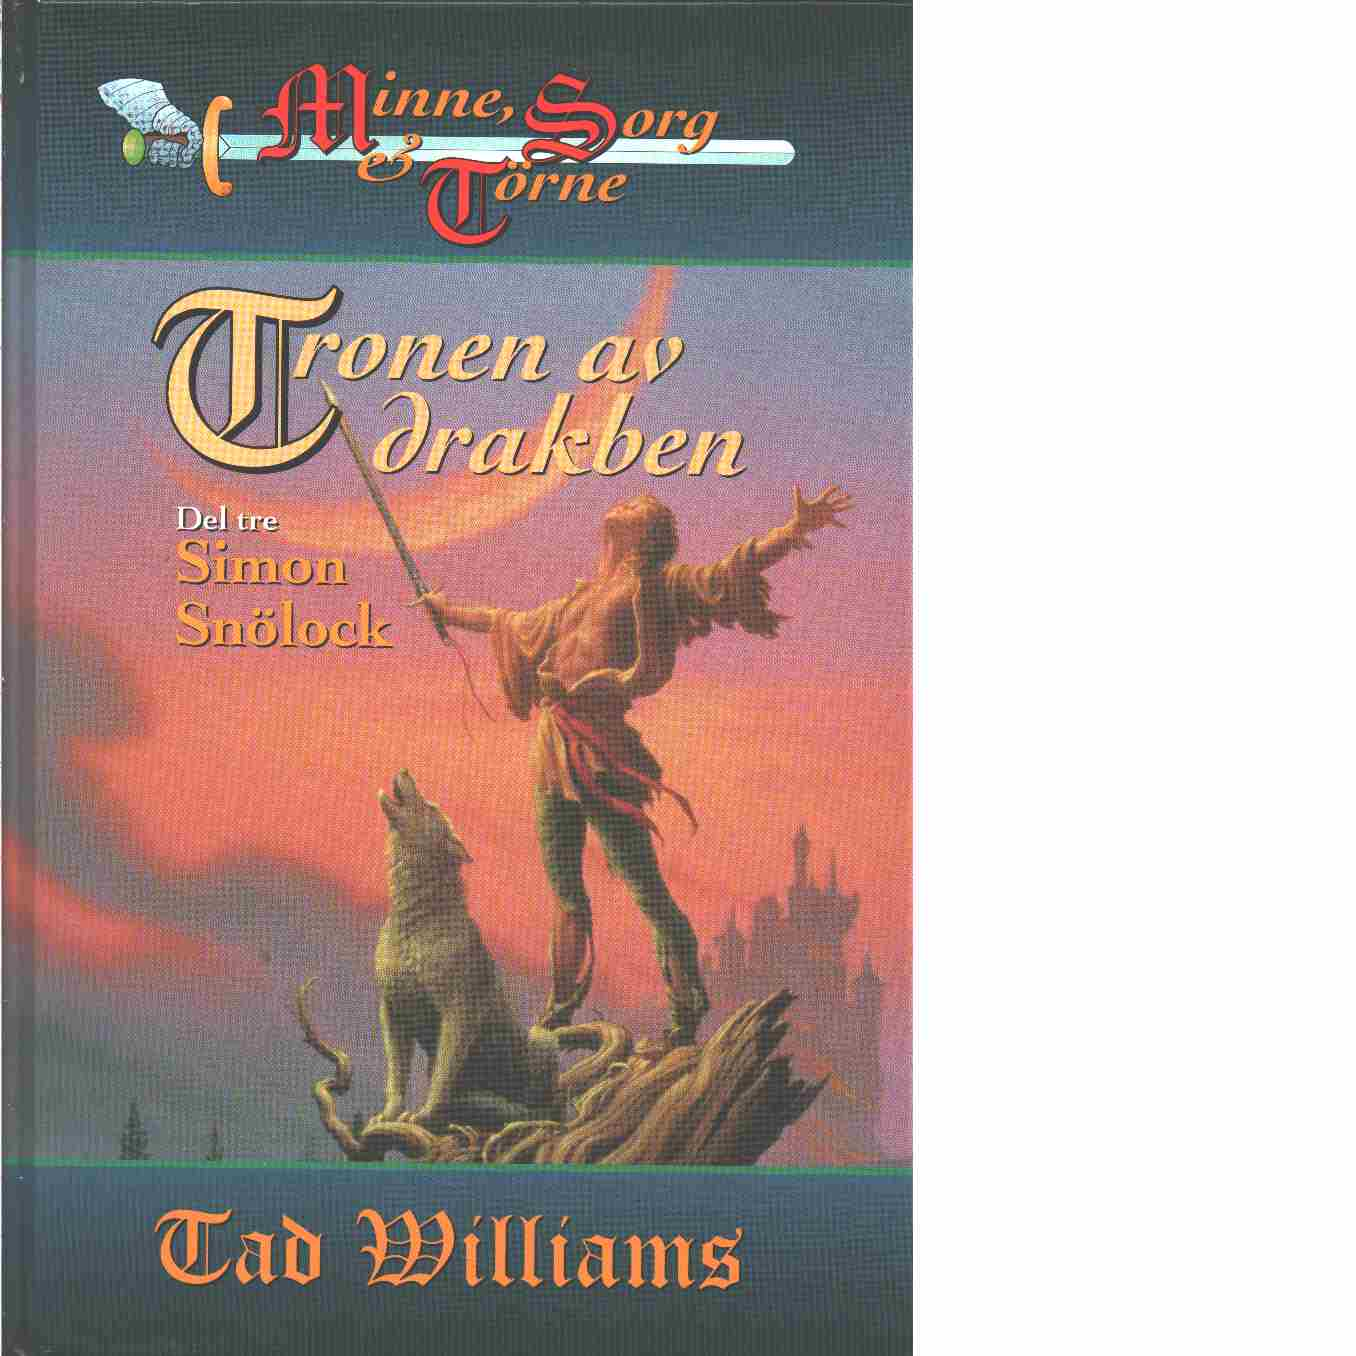 Tronen av drakben. D. 3, Simon Snölock - Williams, Tad